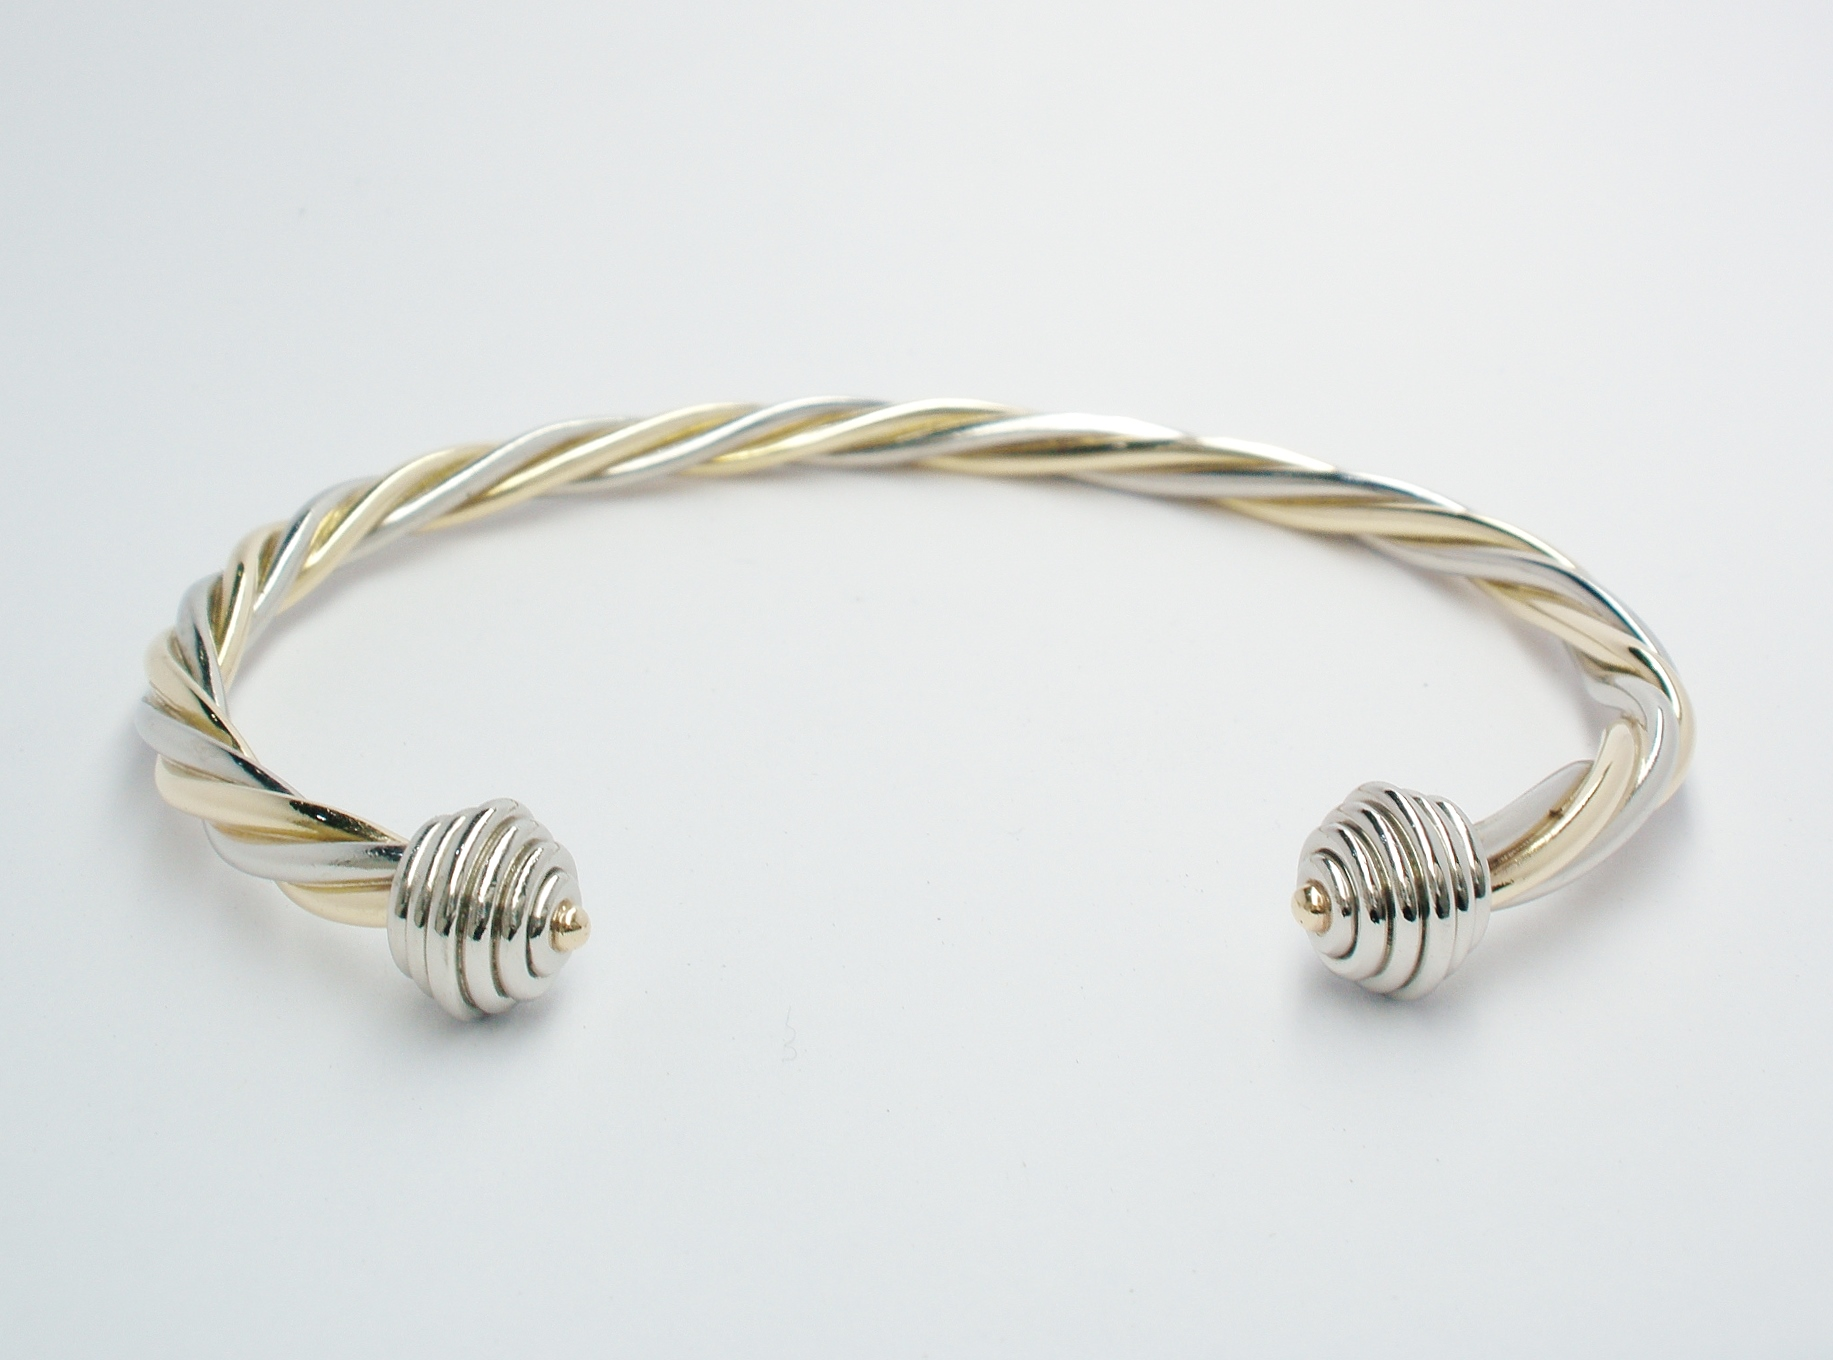 9ct. yellow gold and palladium 2 tone twisted rope style torque bangle with palladium ringed spherical ends.